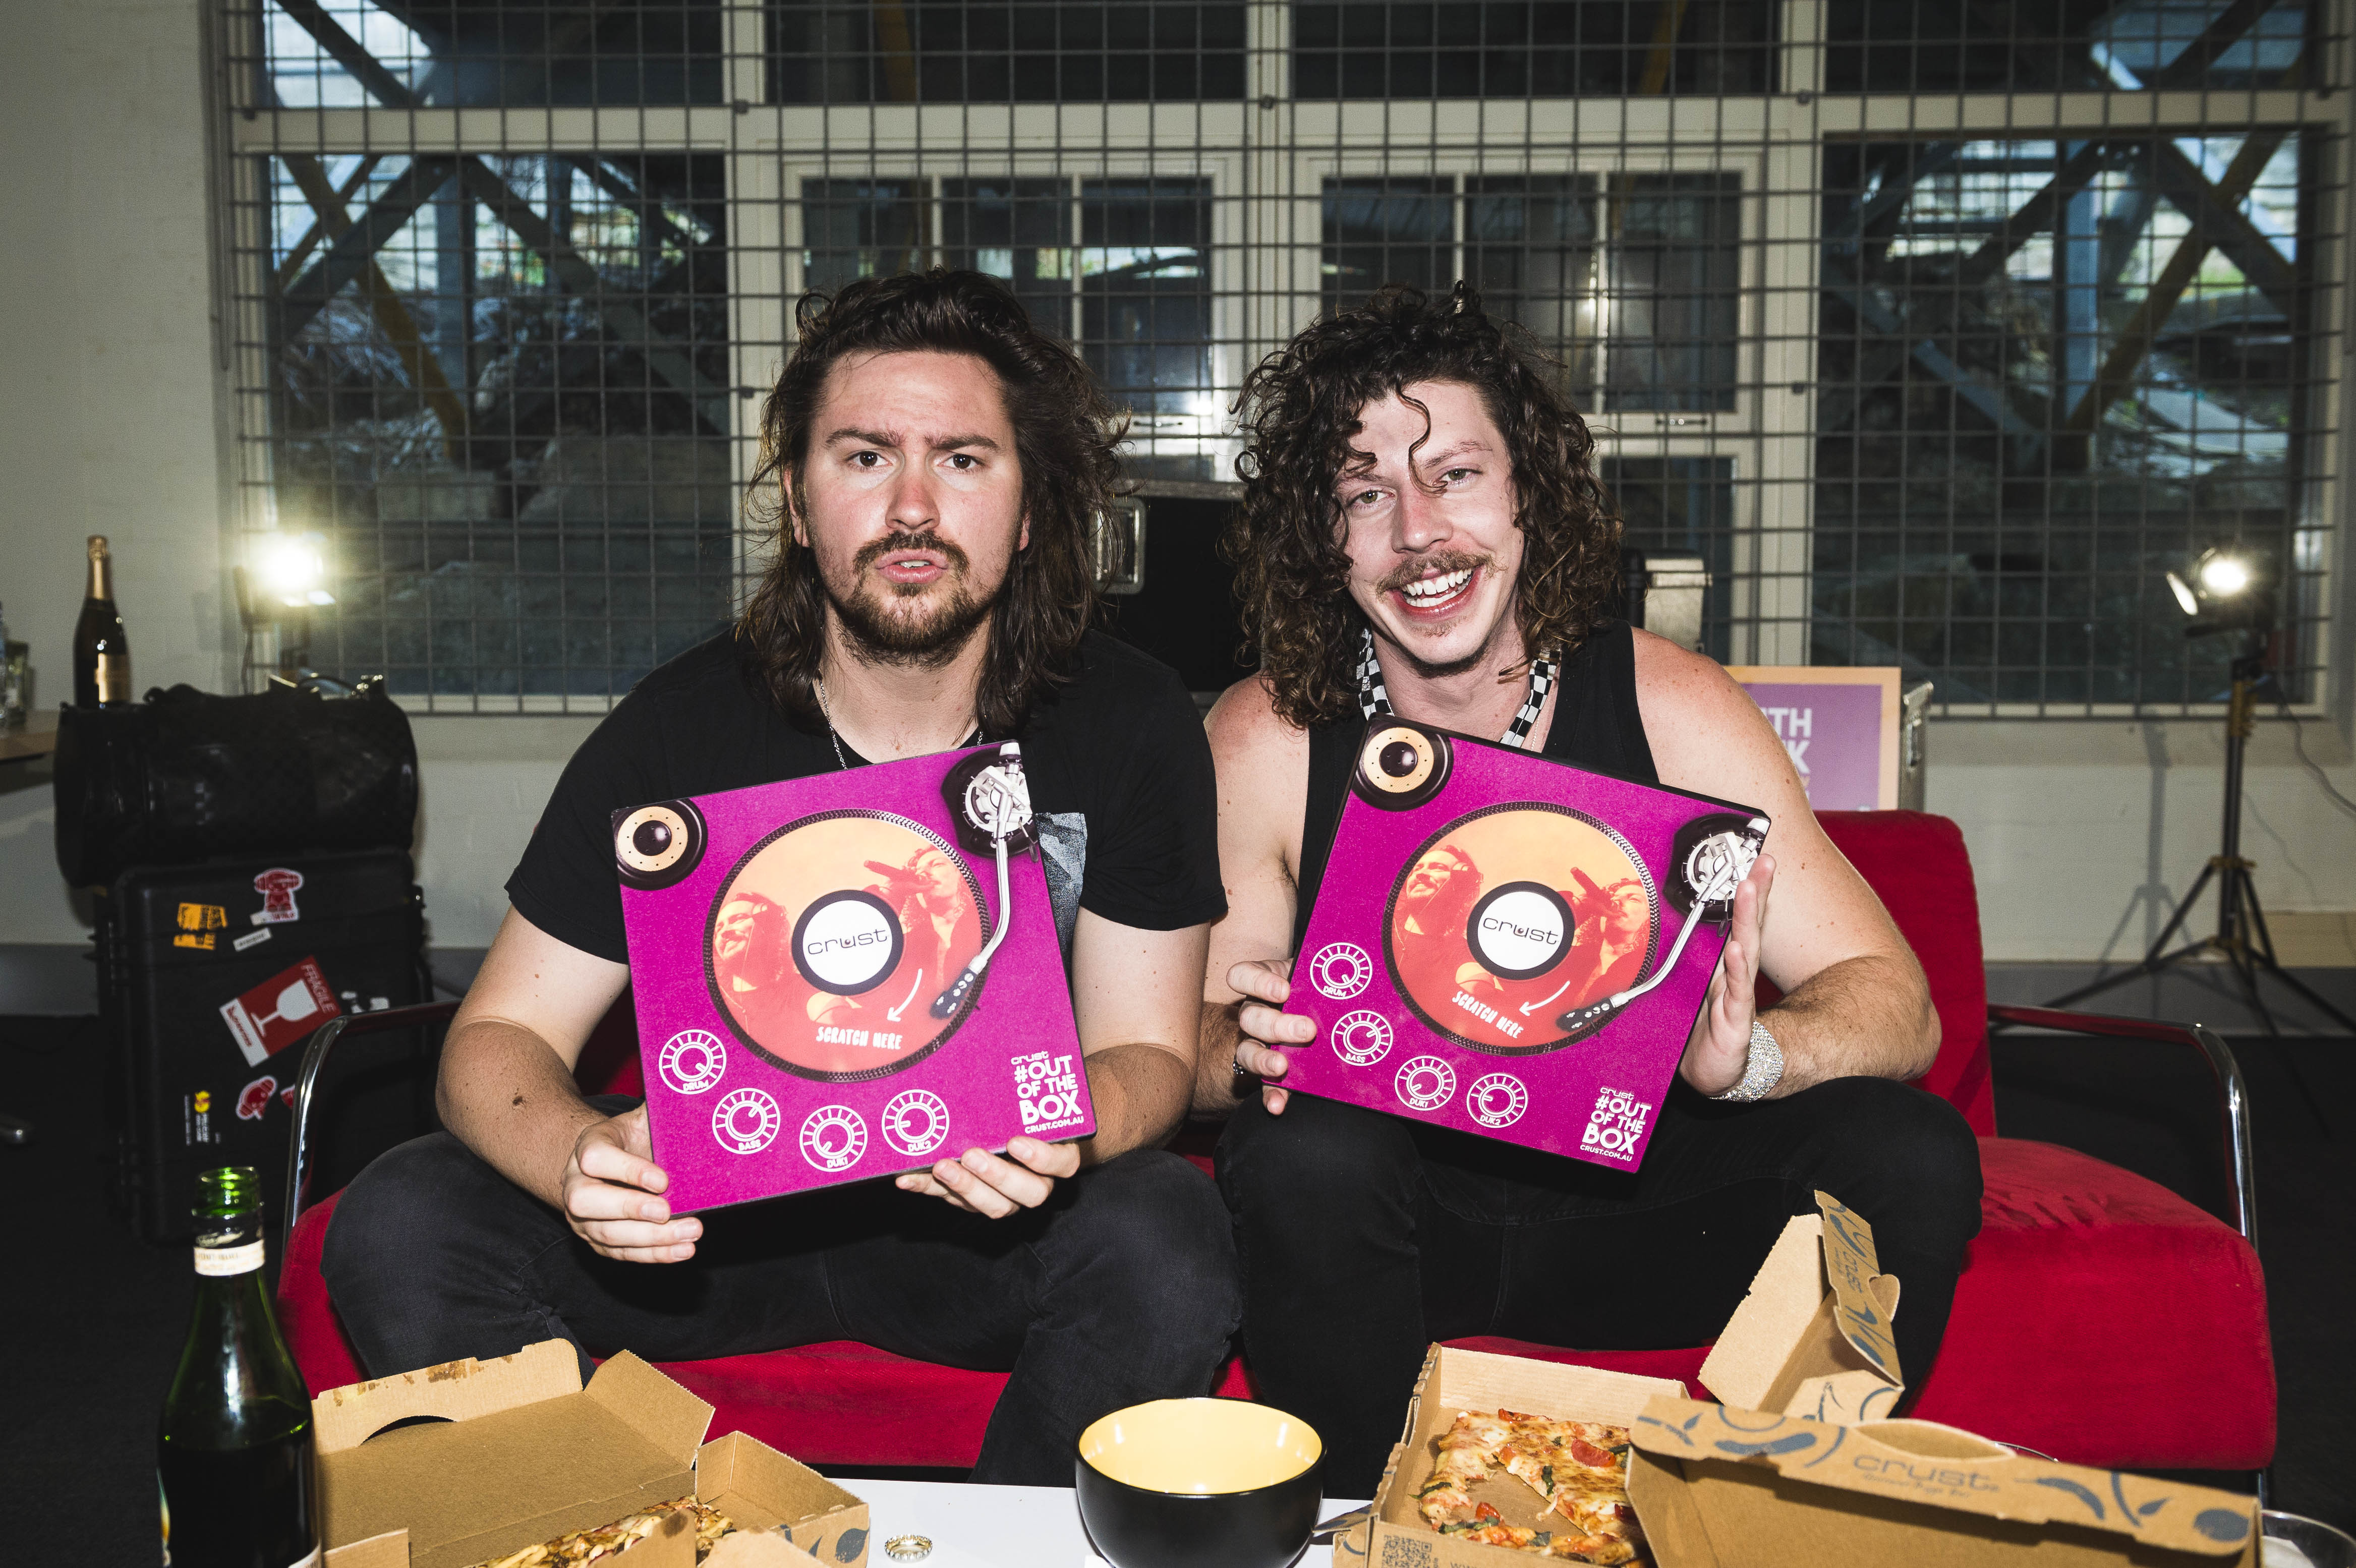 PEKING DUK & CRUST PIZZA